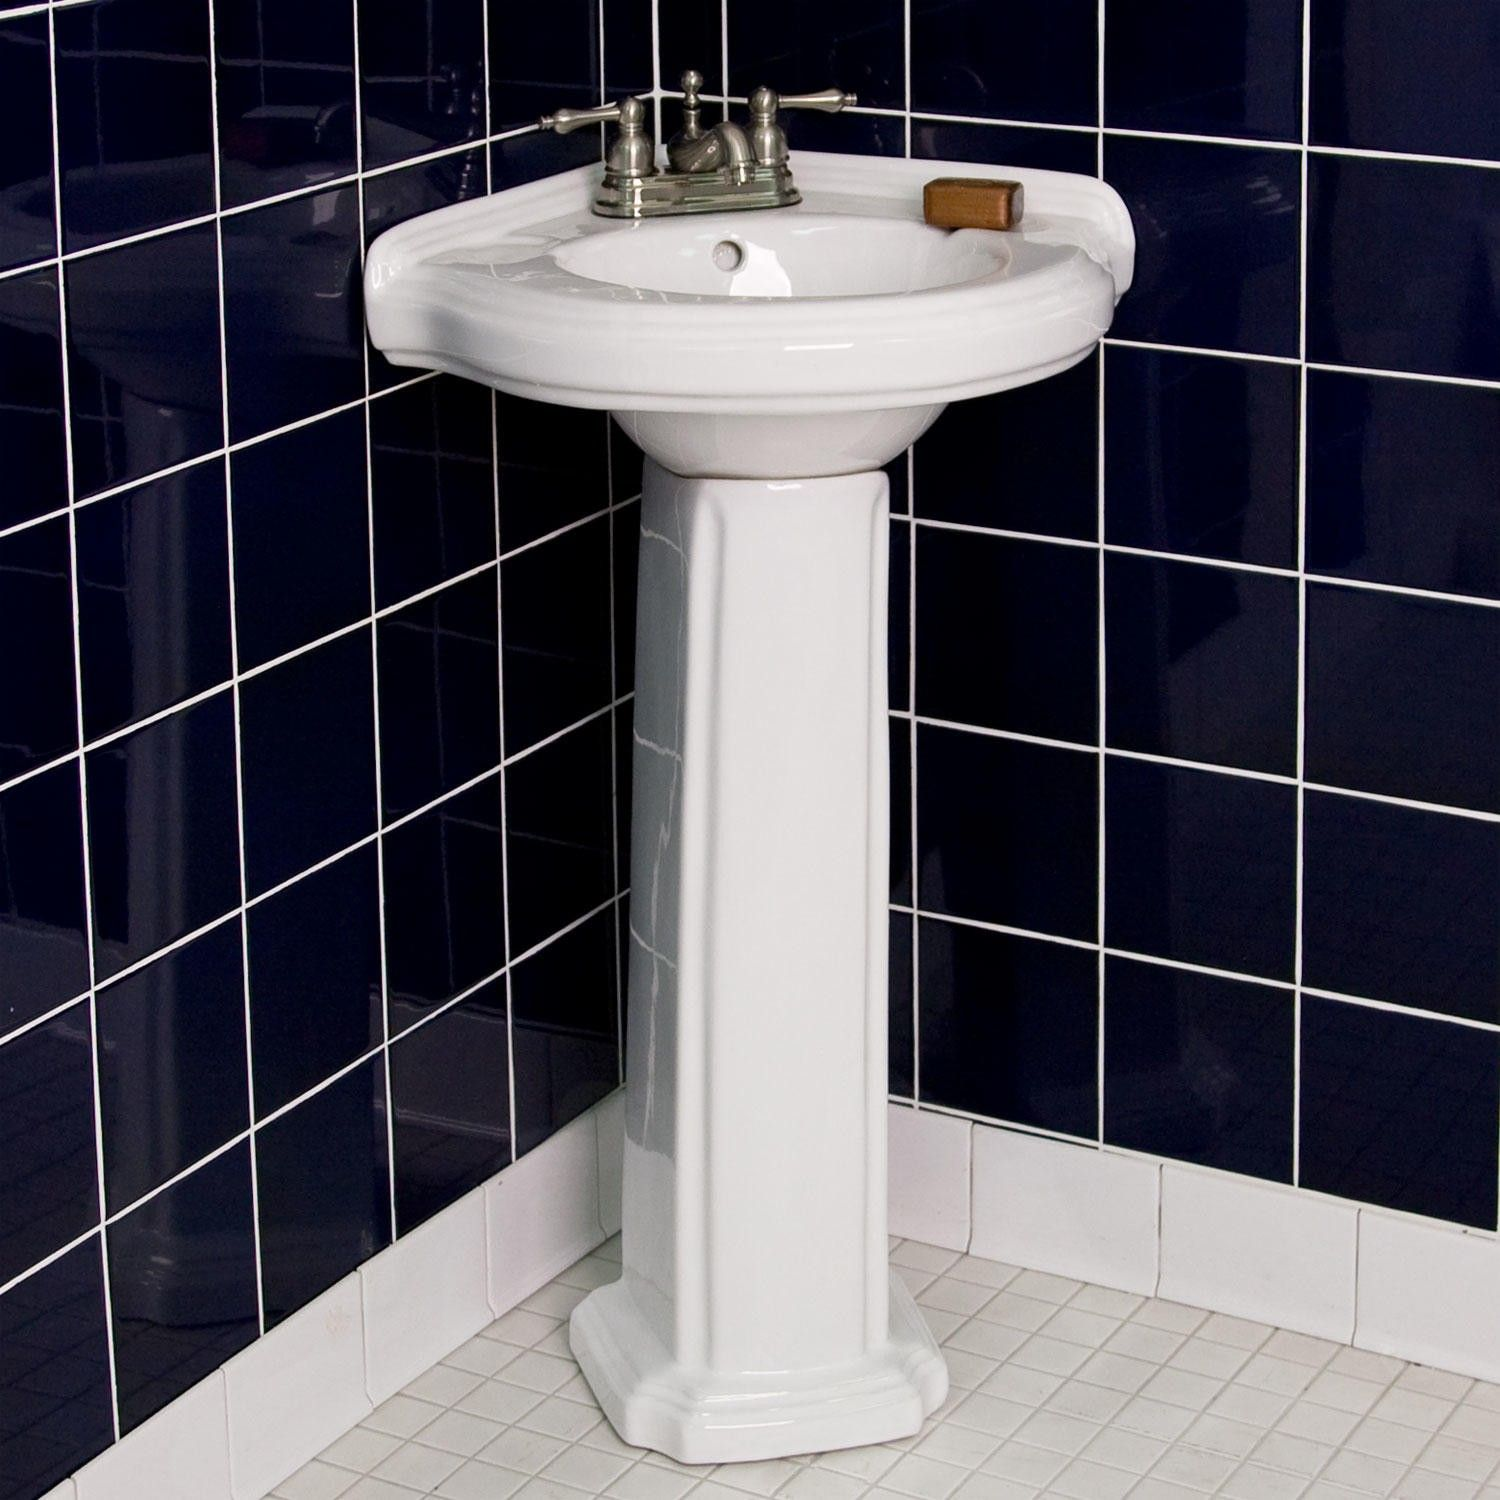 Gaston Corner Pedestal Sink